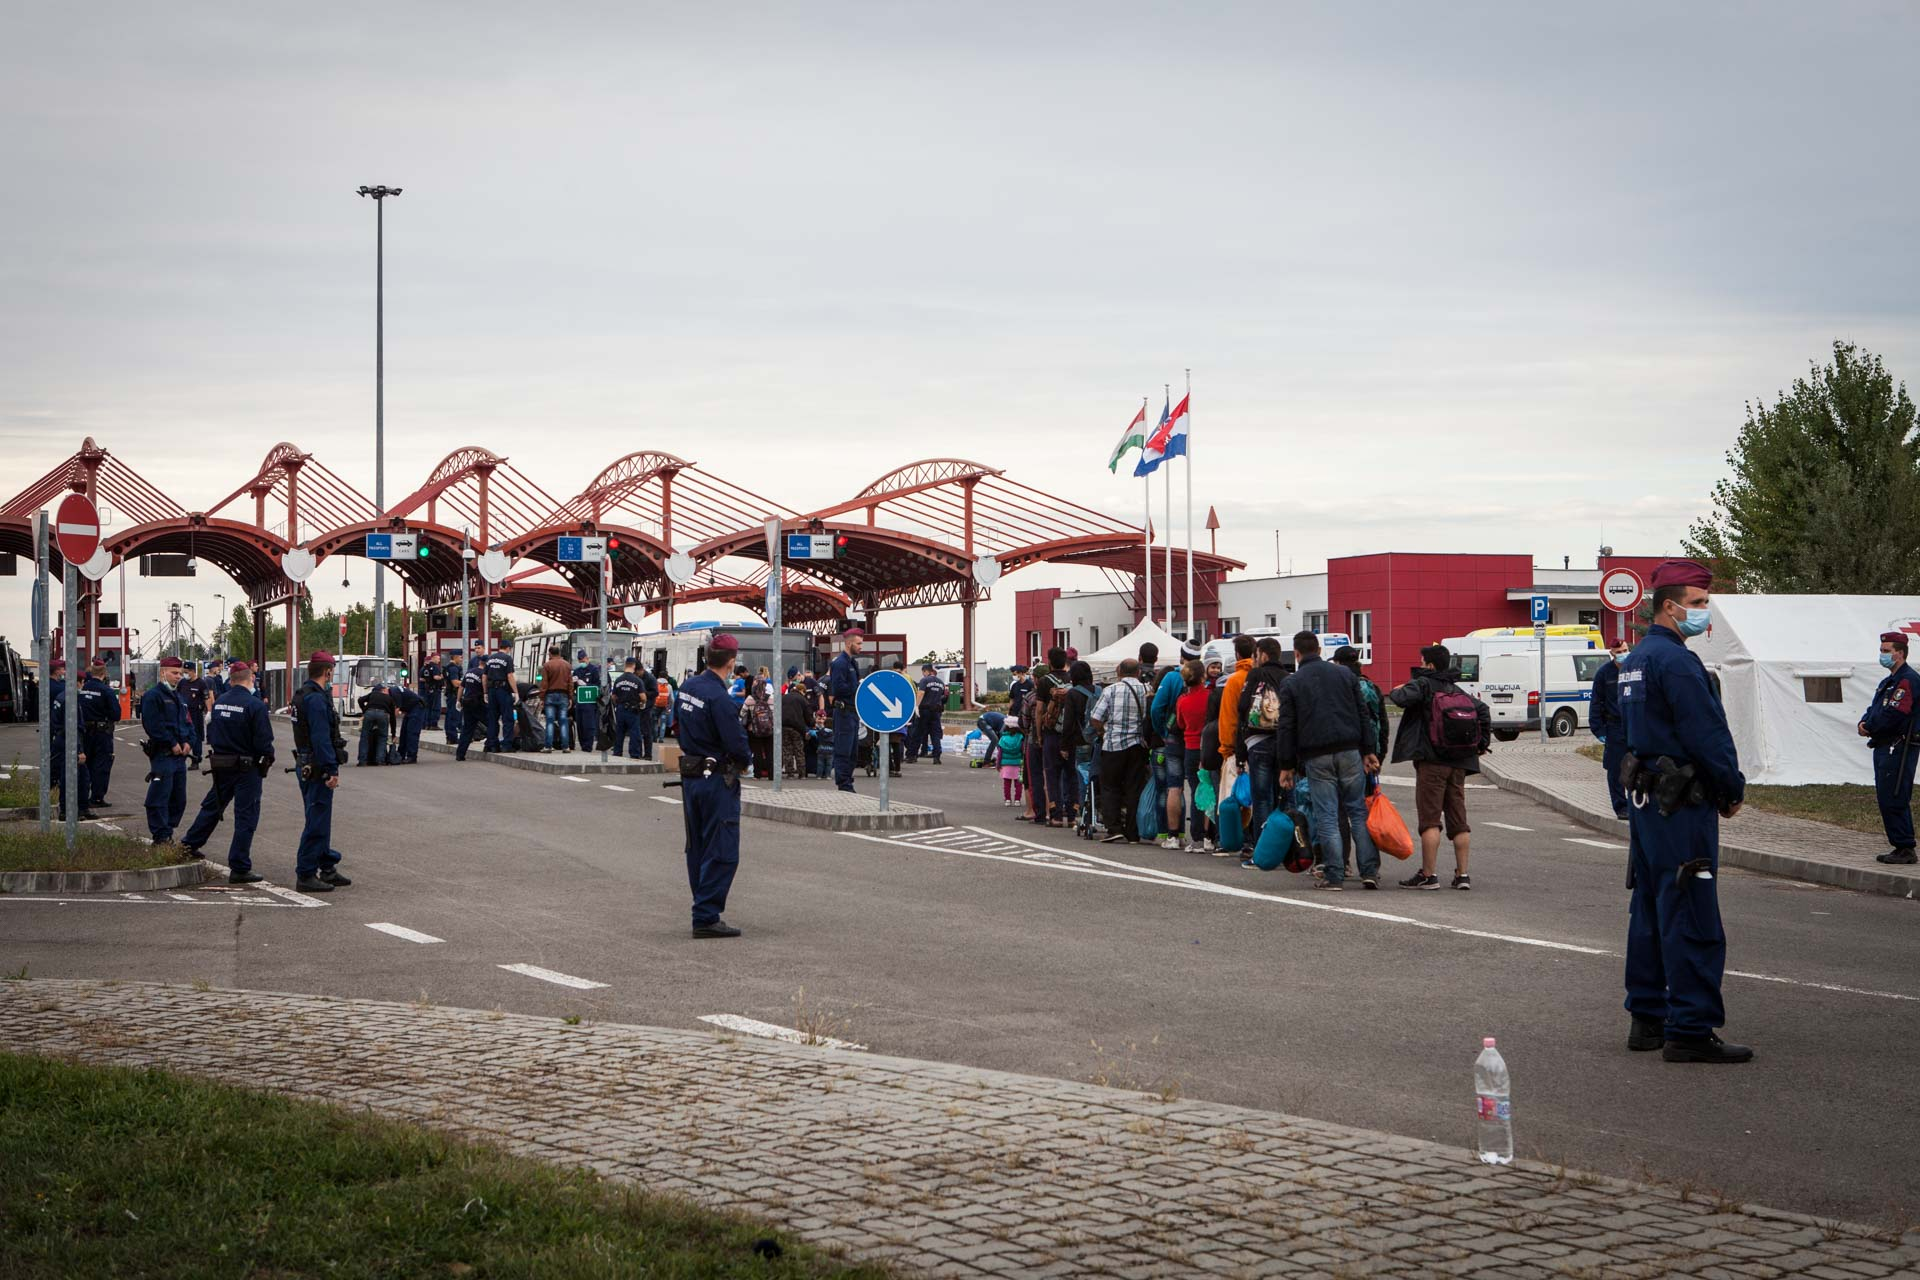 After Hungary closed its border to Serbia, it still allowed refugees coming from Croatia to cross to Austria in small numbers. These were the last people to legally set foot on Hungarian soil, before the conservative government of Orban shut down the country to refugees completely.